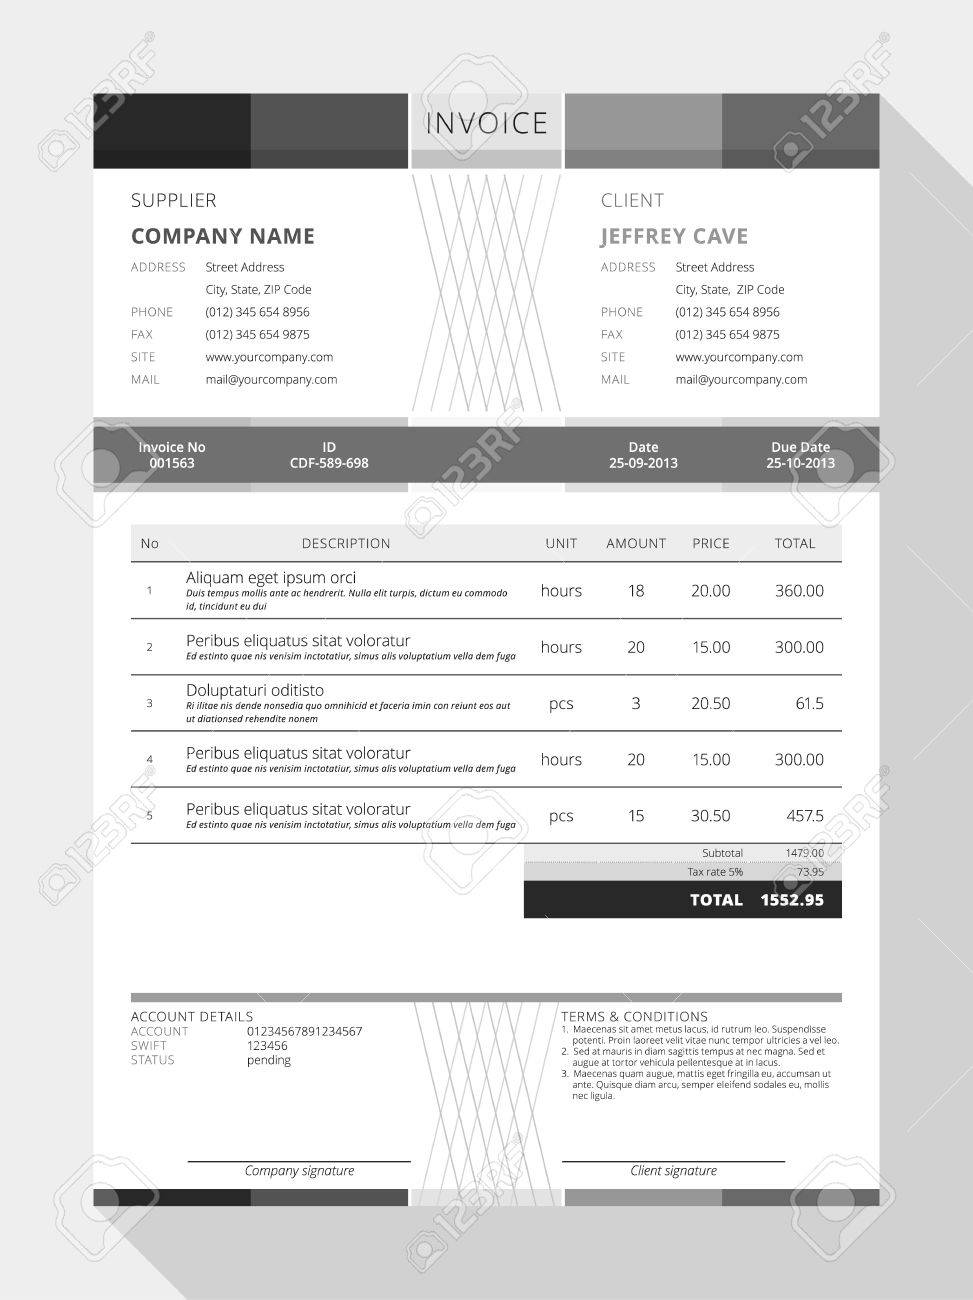 Reliefworkersus  Unique Design An Invoice  Professional Graphic Design Invoice  With Marvelous Vector Customizable Invoice Form Template Design Vector   Design An Invoice With Extraordinary Sample Invoice Xls Also Ubl Invoice In Addition Free Invoice Template Open Office And Free Invoicing Software Uk As Well As Single Invoice Discounting Additionally Uk Vat Invoice Template From Happytomco With Reliefworkersus  Marvelous Design An Invoice  Professional Graphic Design Invoice  With Extraordinary Vector Customizable Invoice Form Template Design Vector   Design An Invoice And Unique Sample Invoice Xls Also Ubl Invoice In Addition Free Invoice Template Open Office From Happytomco